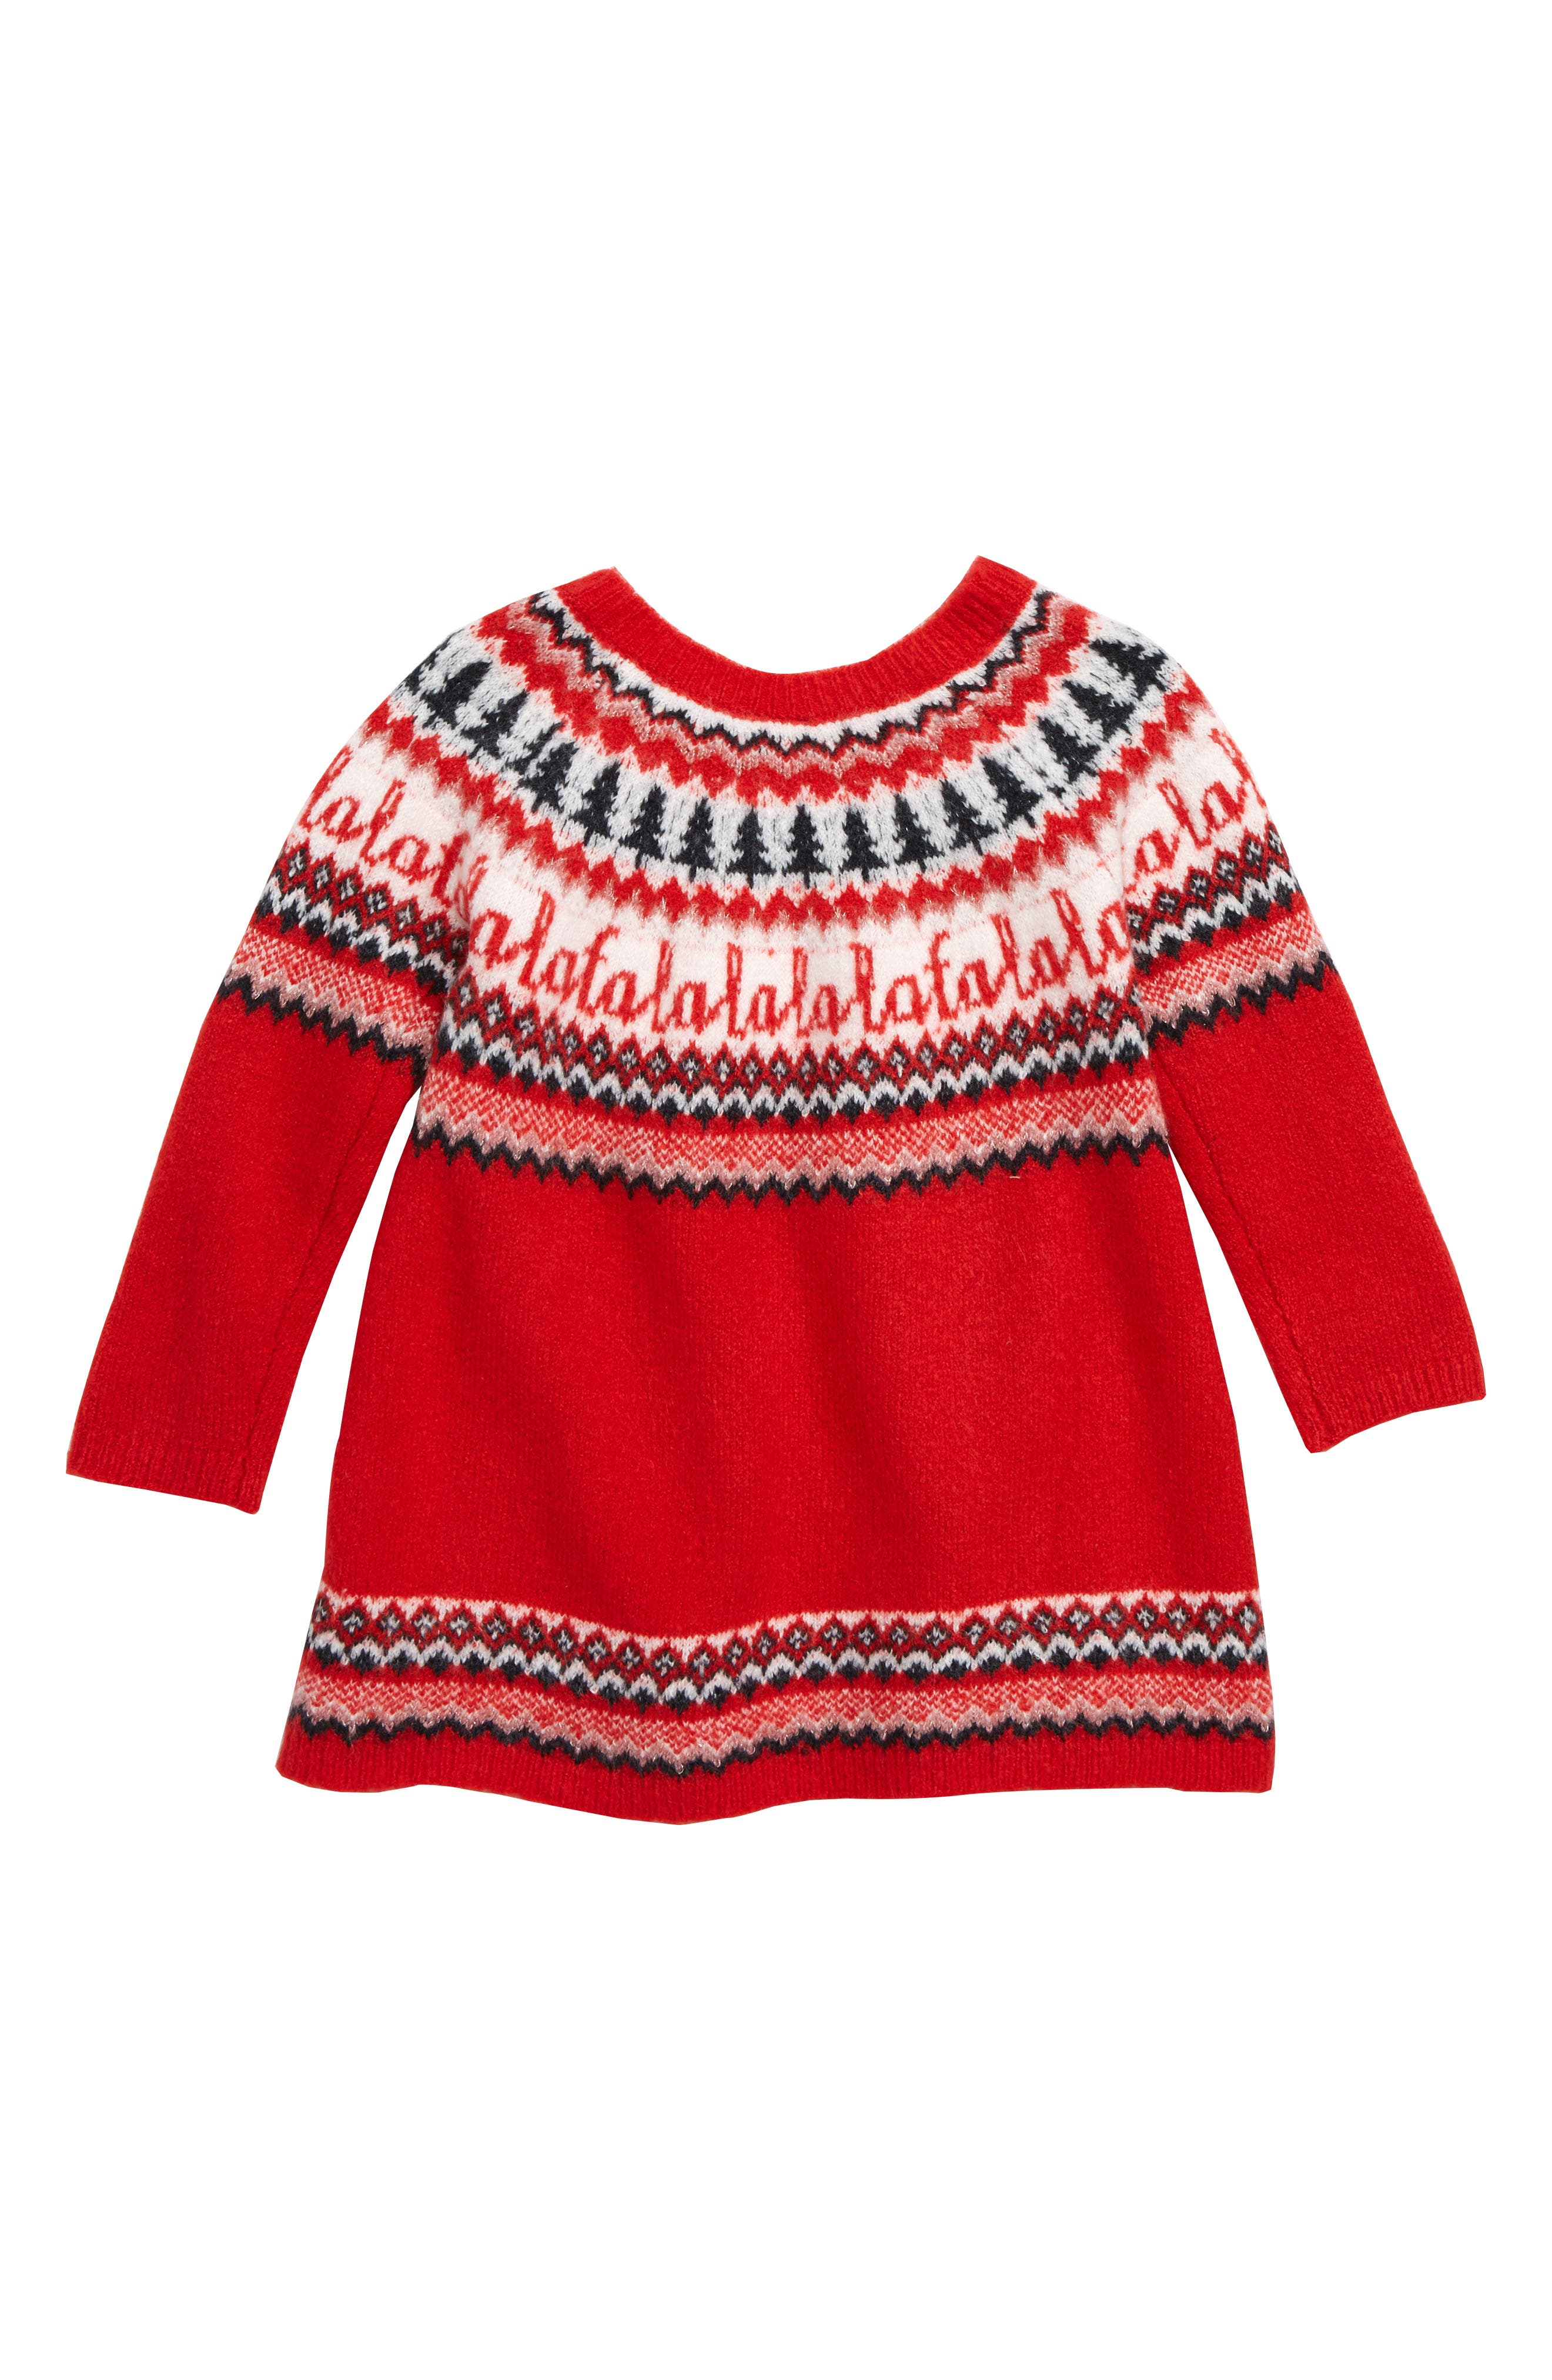 Holiday Sweater Dress,                             Alternate thumbnail 2, color,                             RED PEPPER NORDIC HOLIDAY